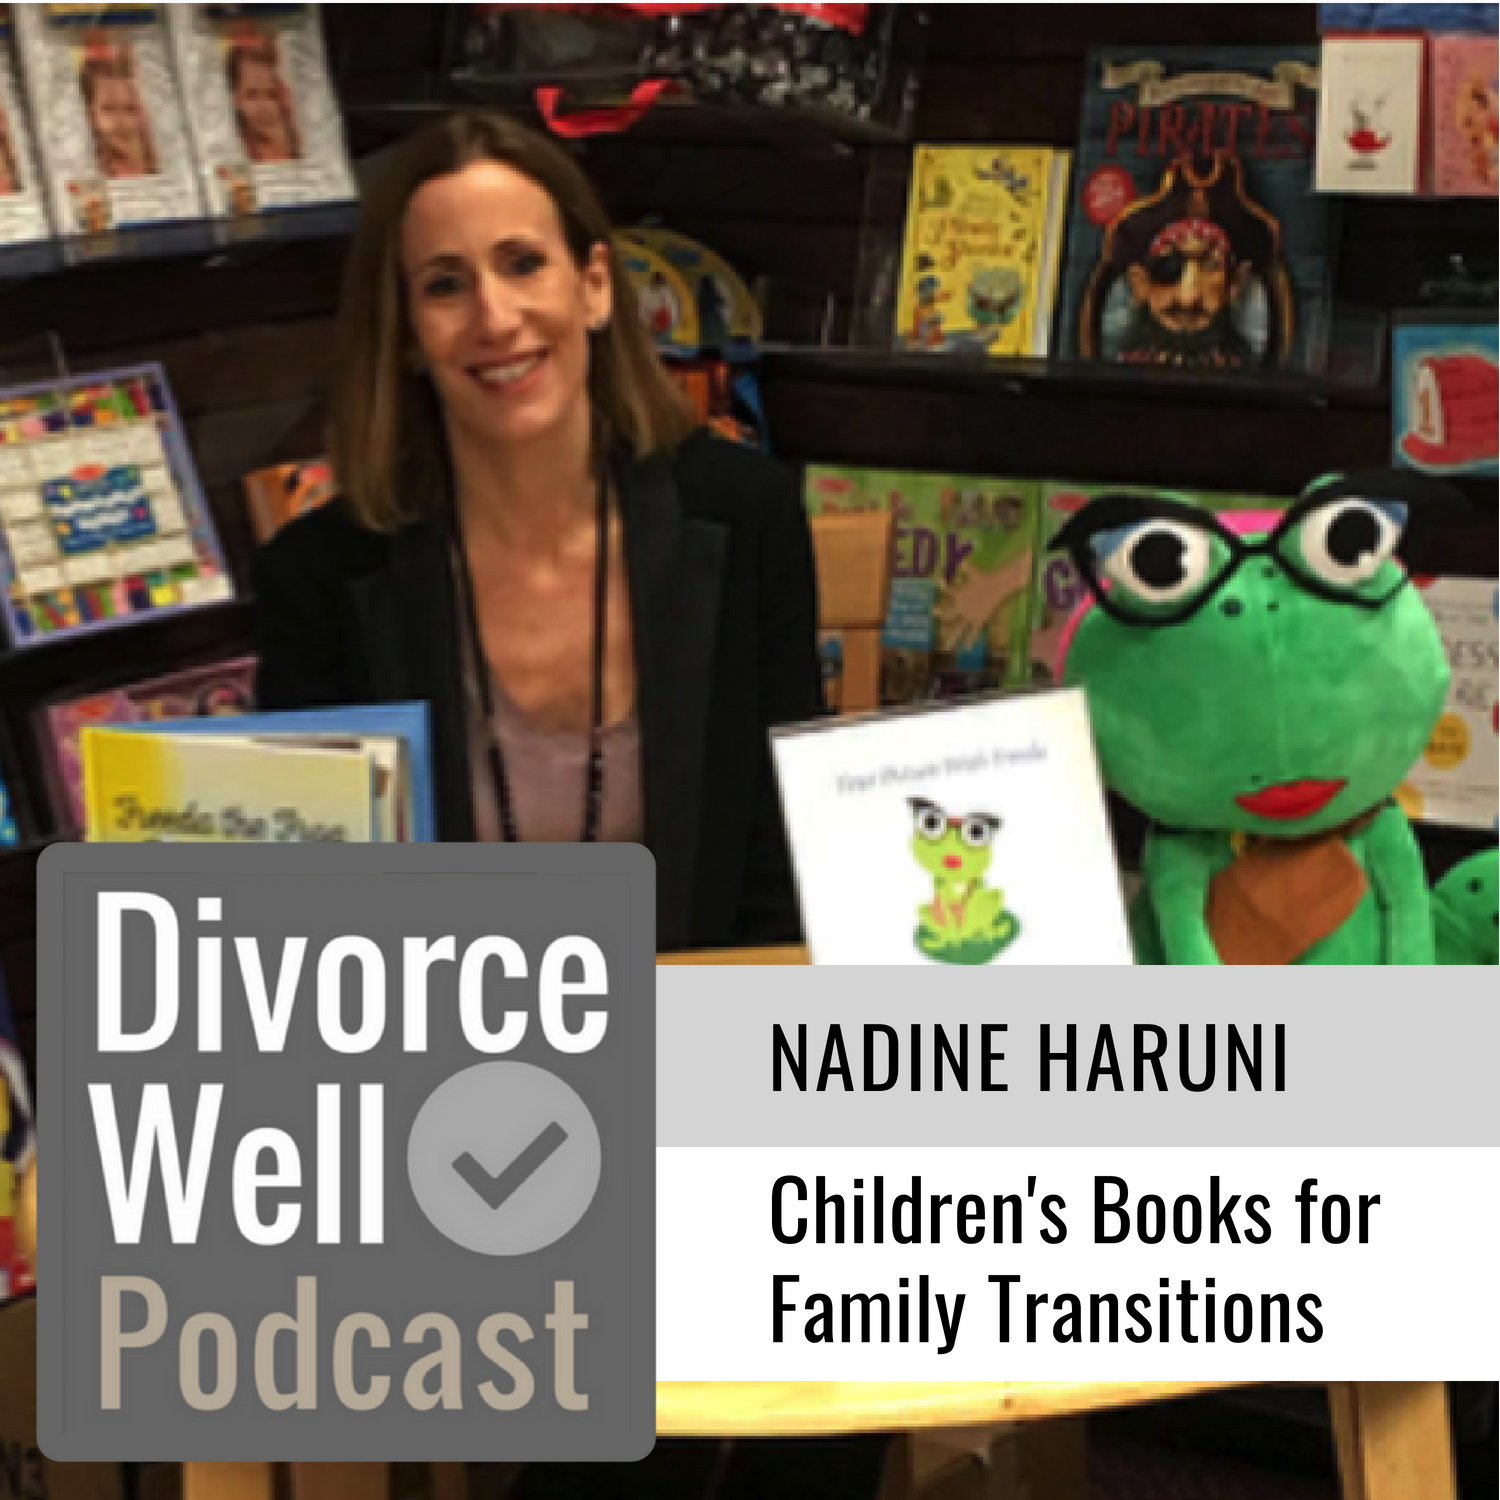 The Divorce Well Podcast - 23 - Children's Books to Help with Family Transitions, with author Nadine Haruni